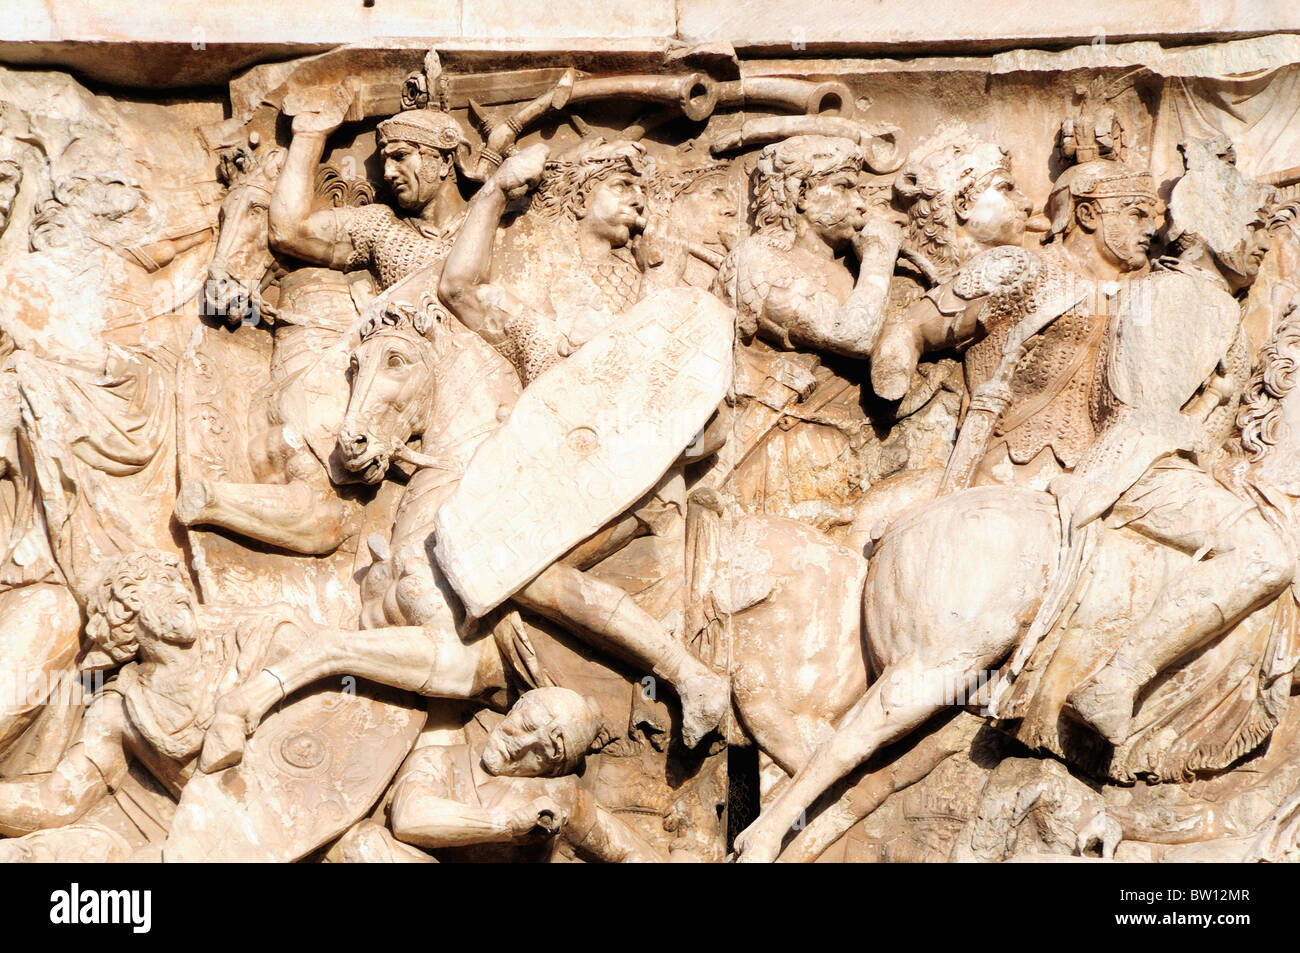 Battle scene detail, Arch of Constantine - Stock Image